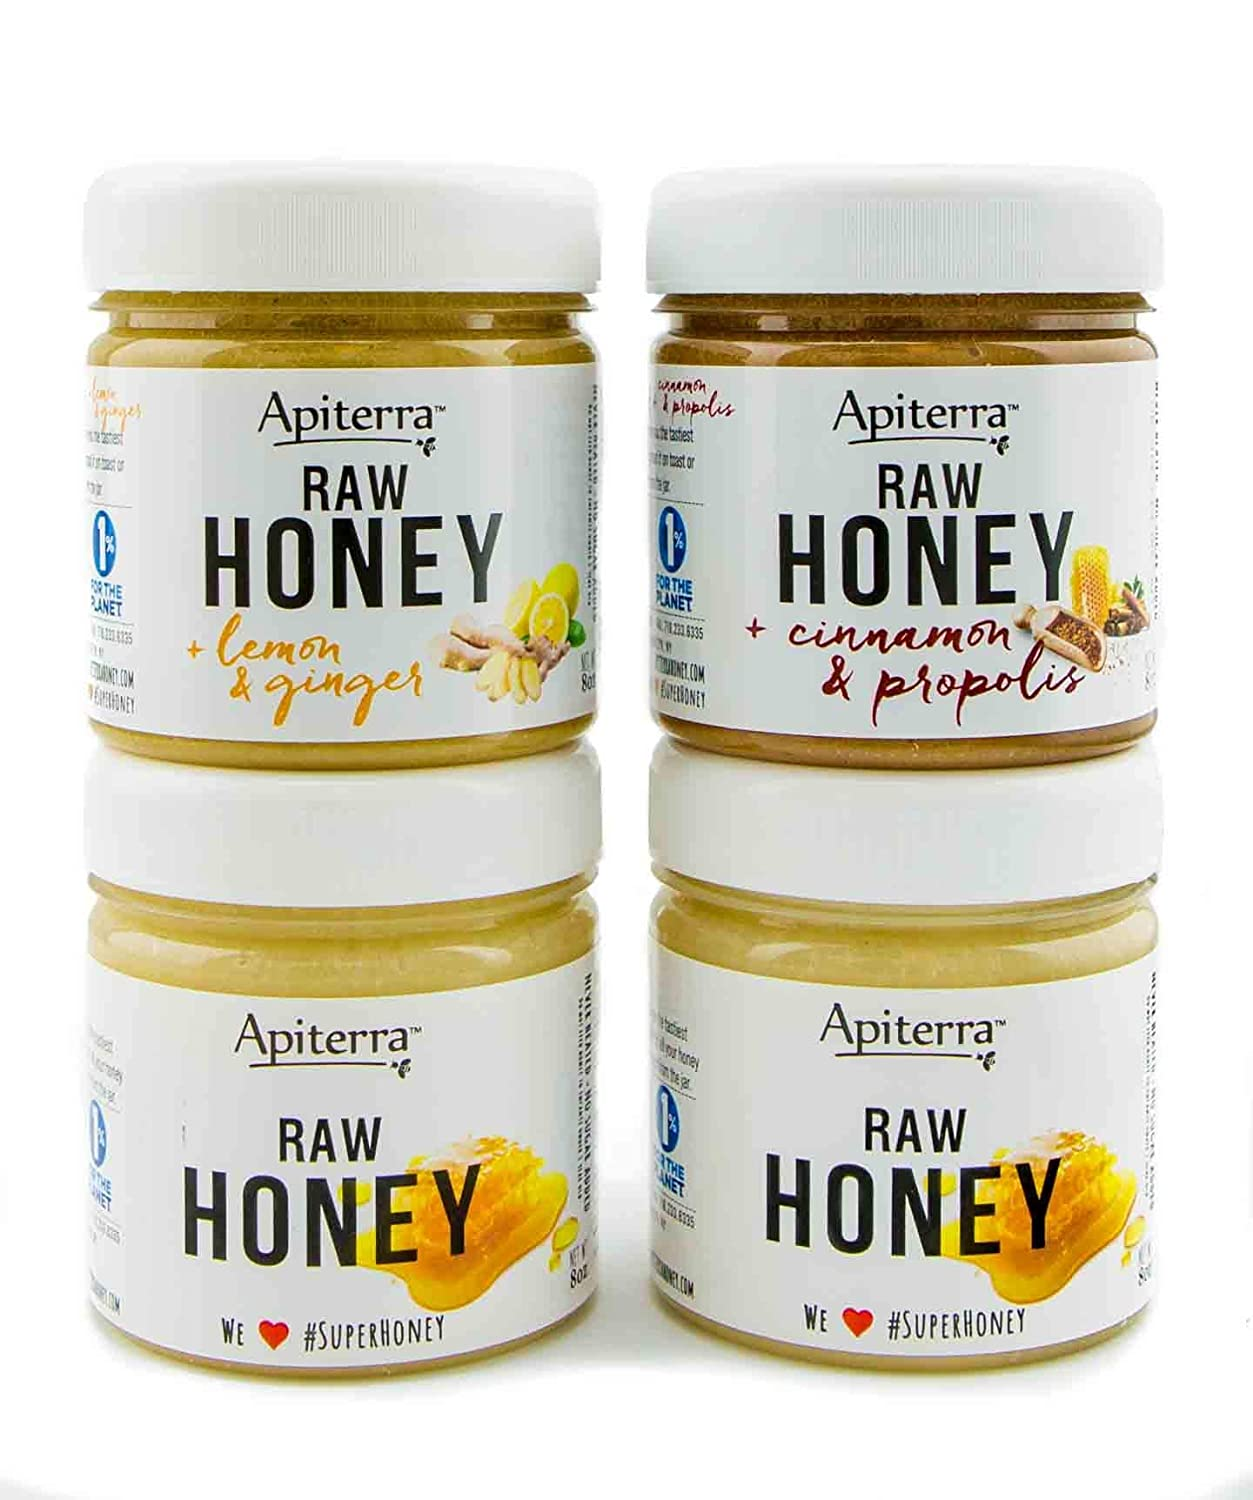 HEALTHY BREAKFAST Honey Gift set - Honey Spread, Jam & Jelly Gift Set - 32 Ounce